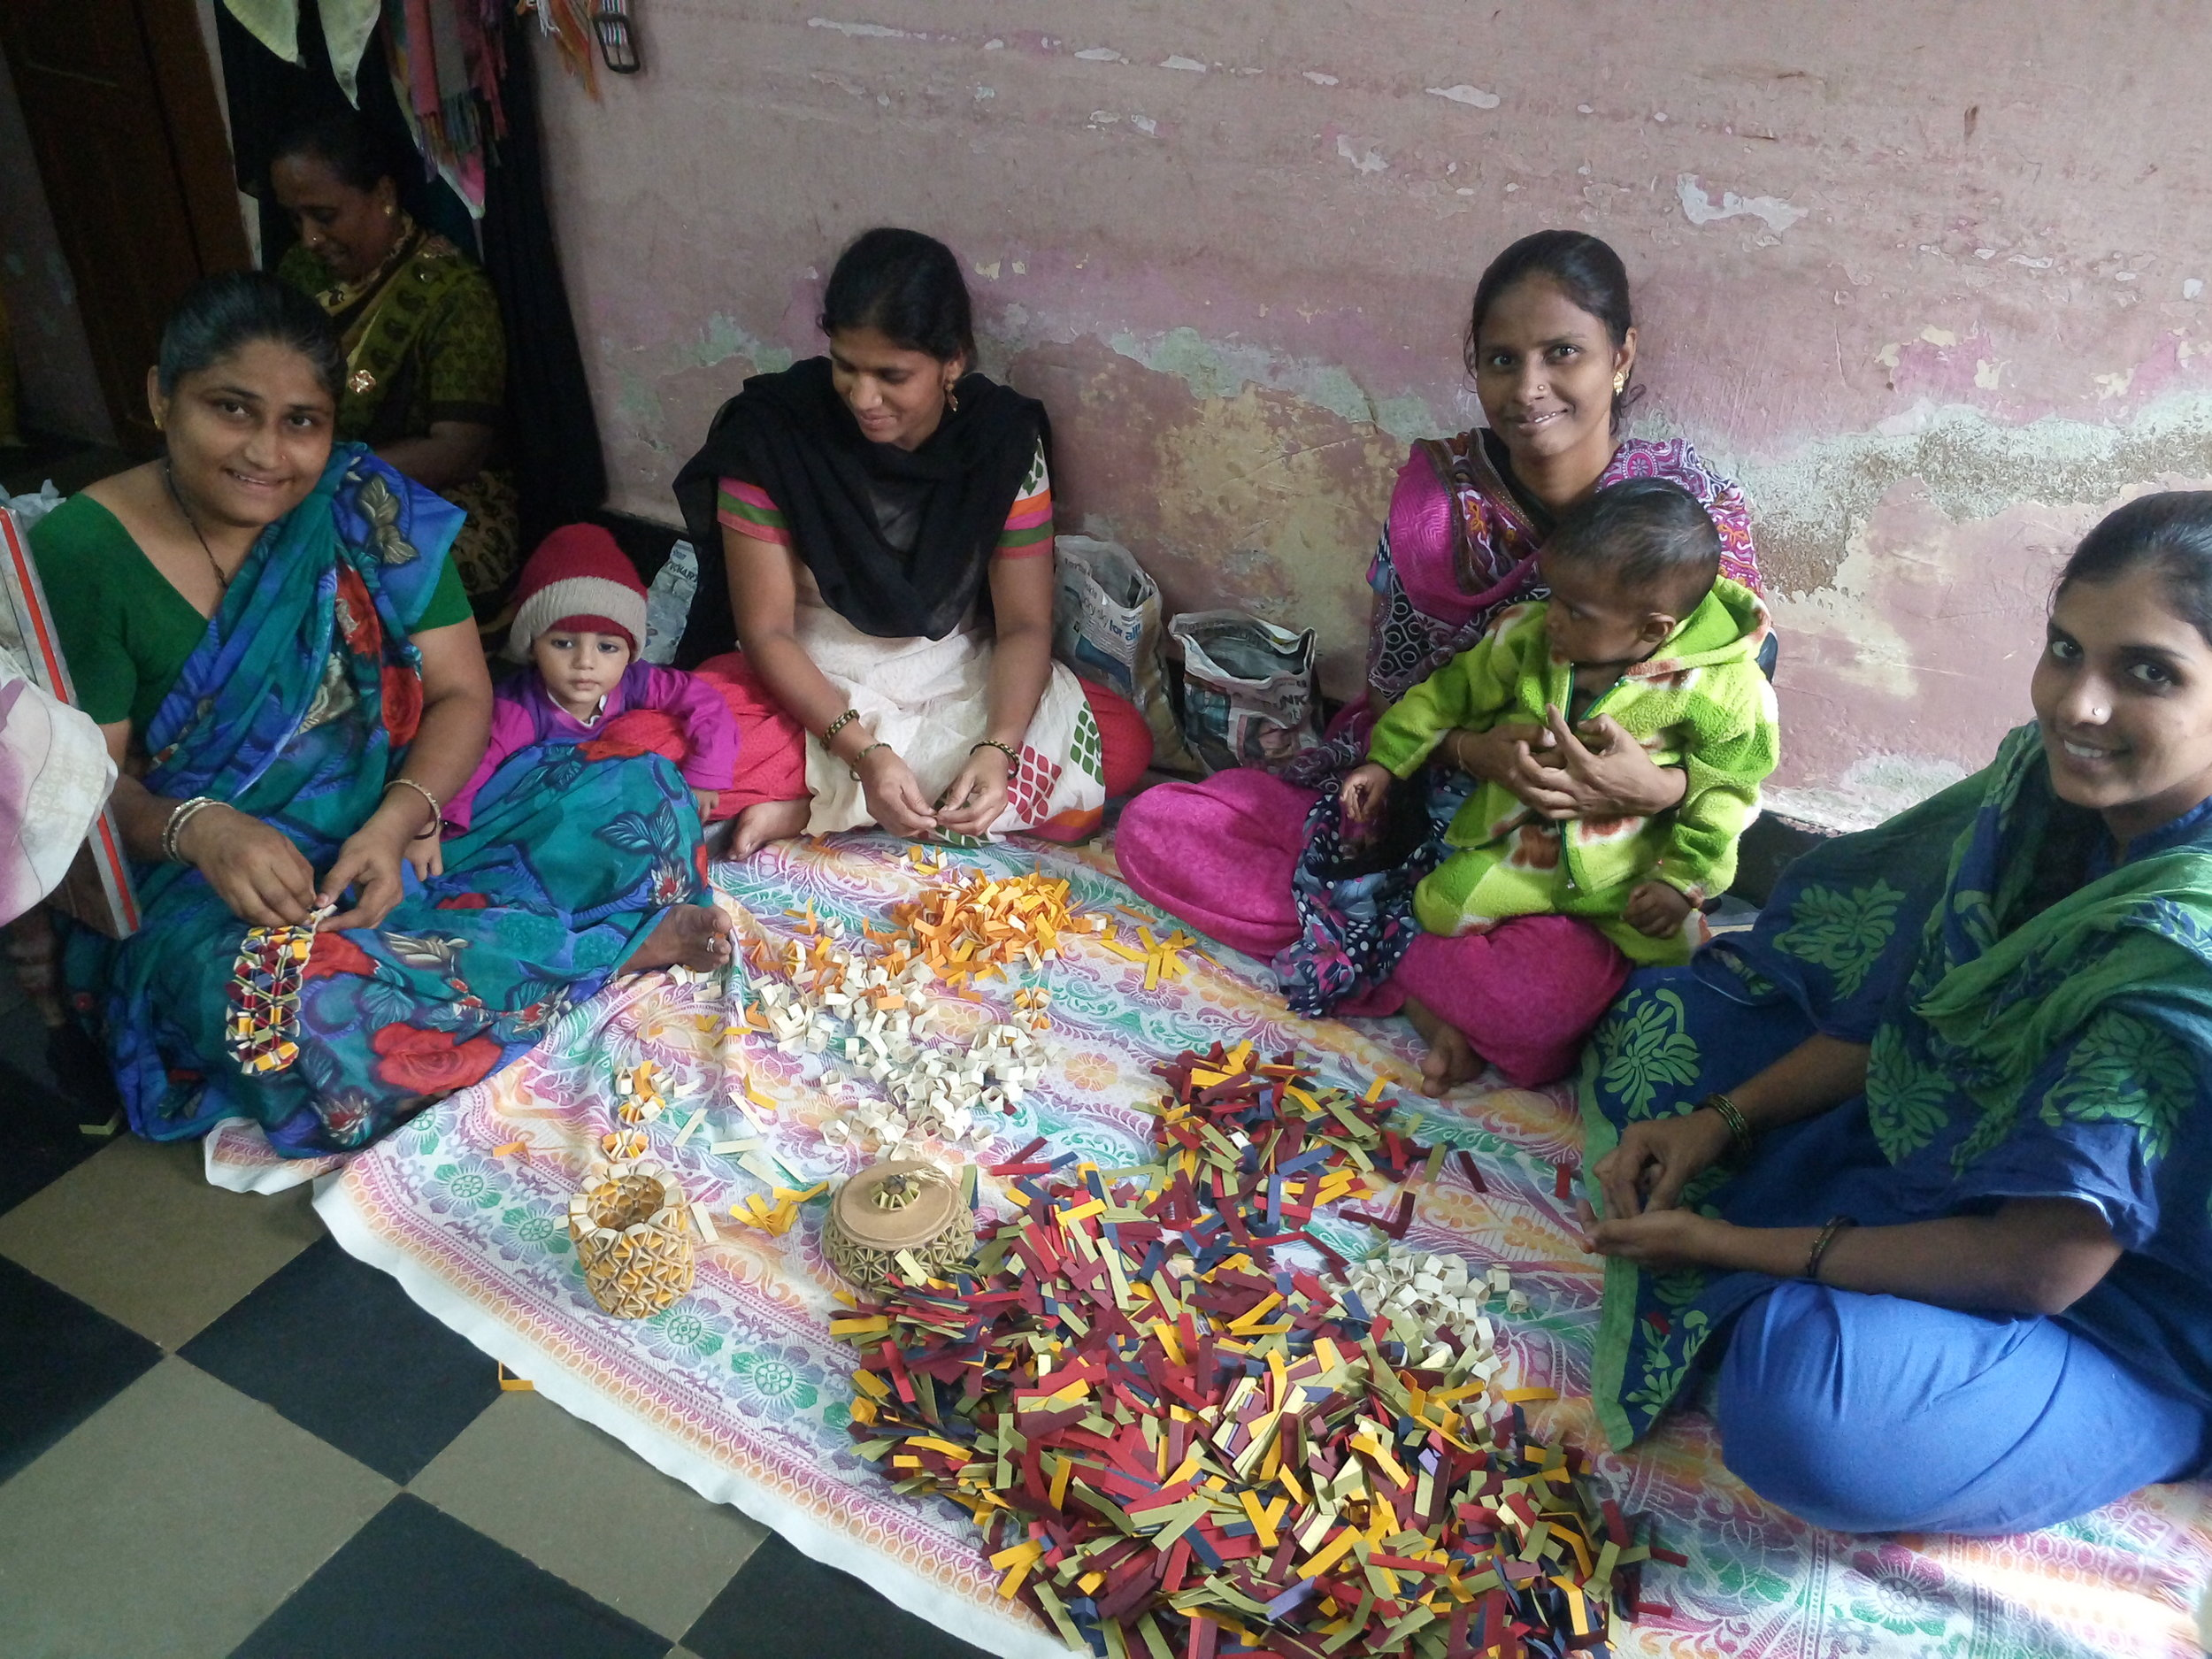 """A JOINT VENTURE - 4EvrCarma is a joint venture with WE Recycleout of Hyderabad, India to produce an elegant line of accessories upcycled from waste materials created by using dozens of women from the poorest regions (""""slums"""")… transforming lives and communities."""